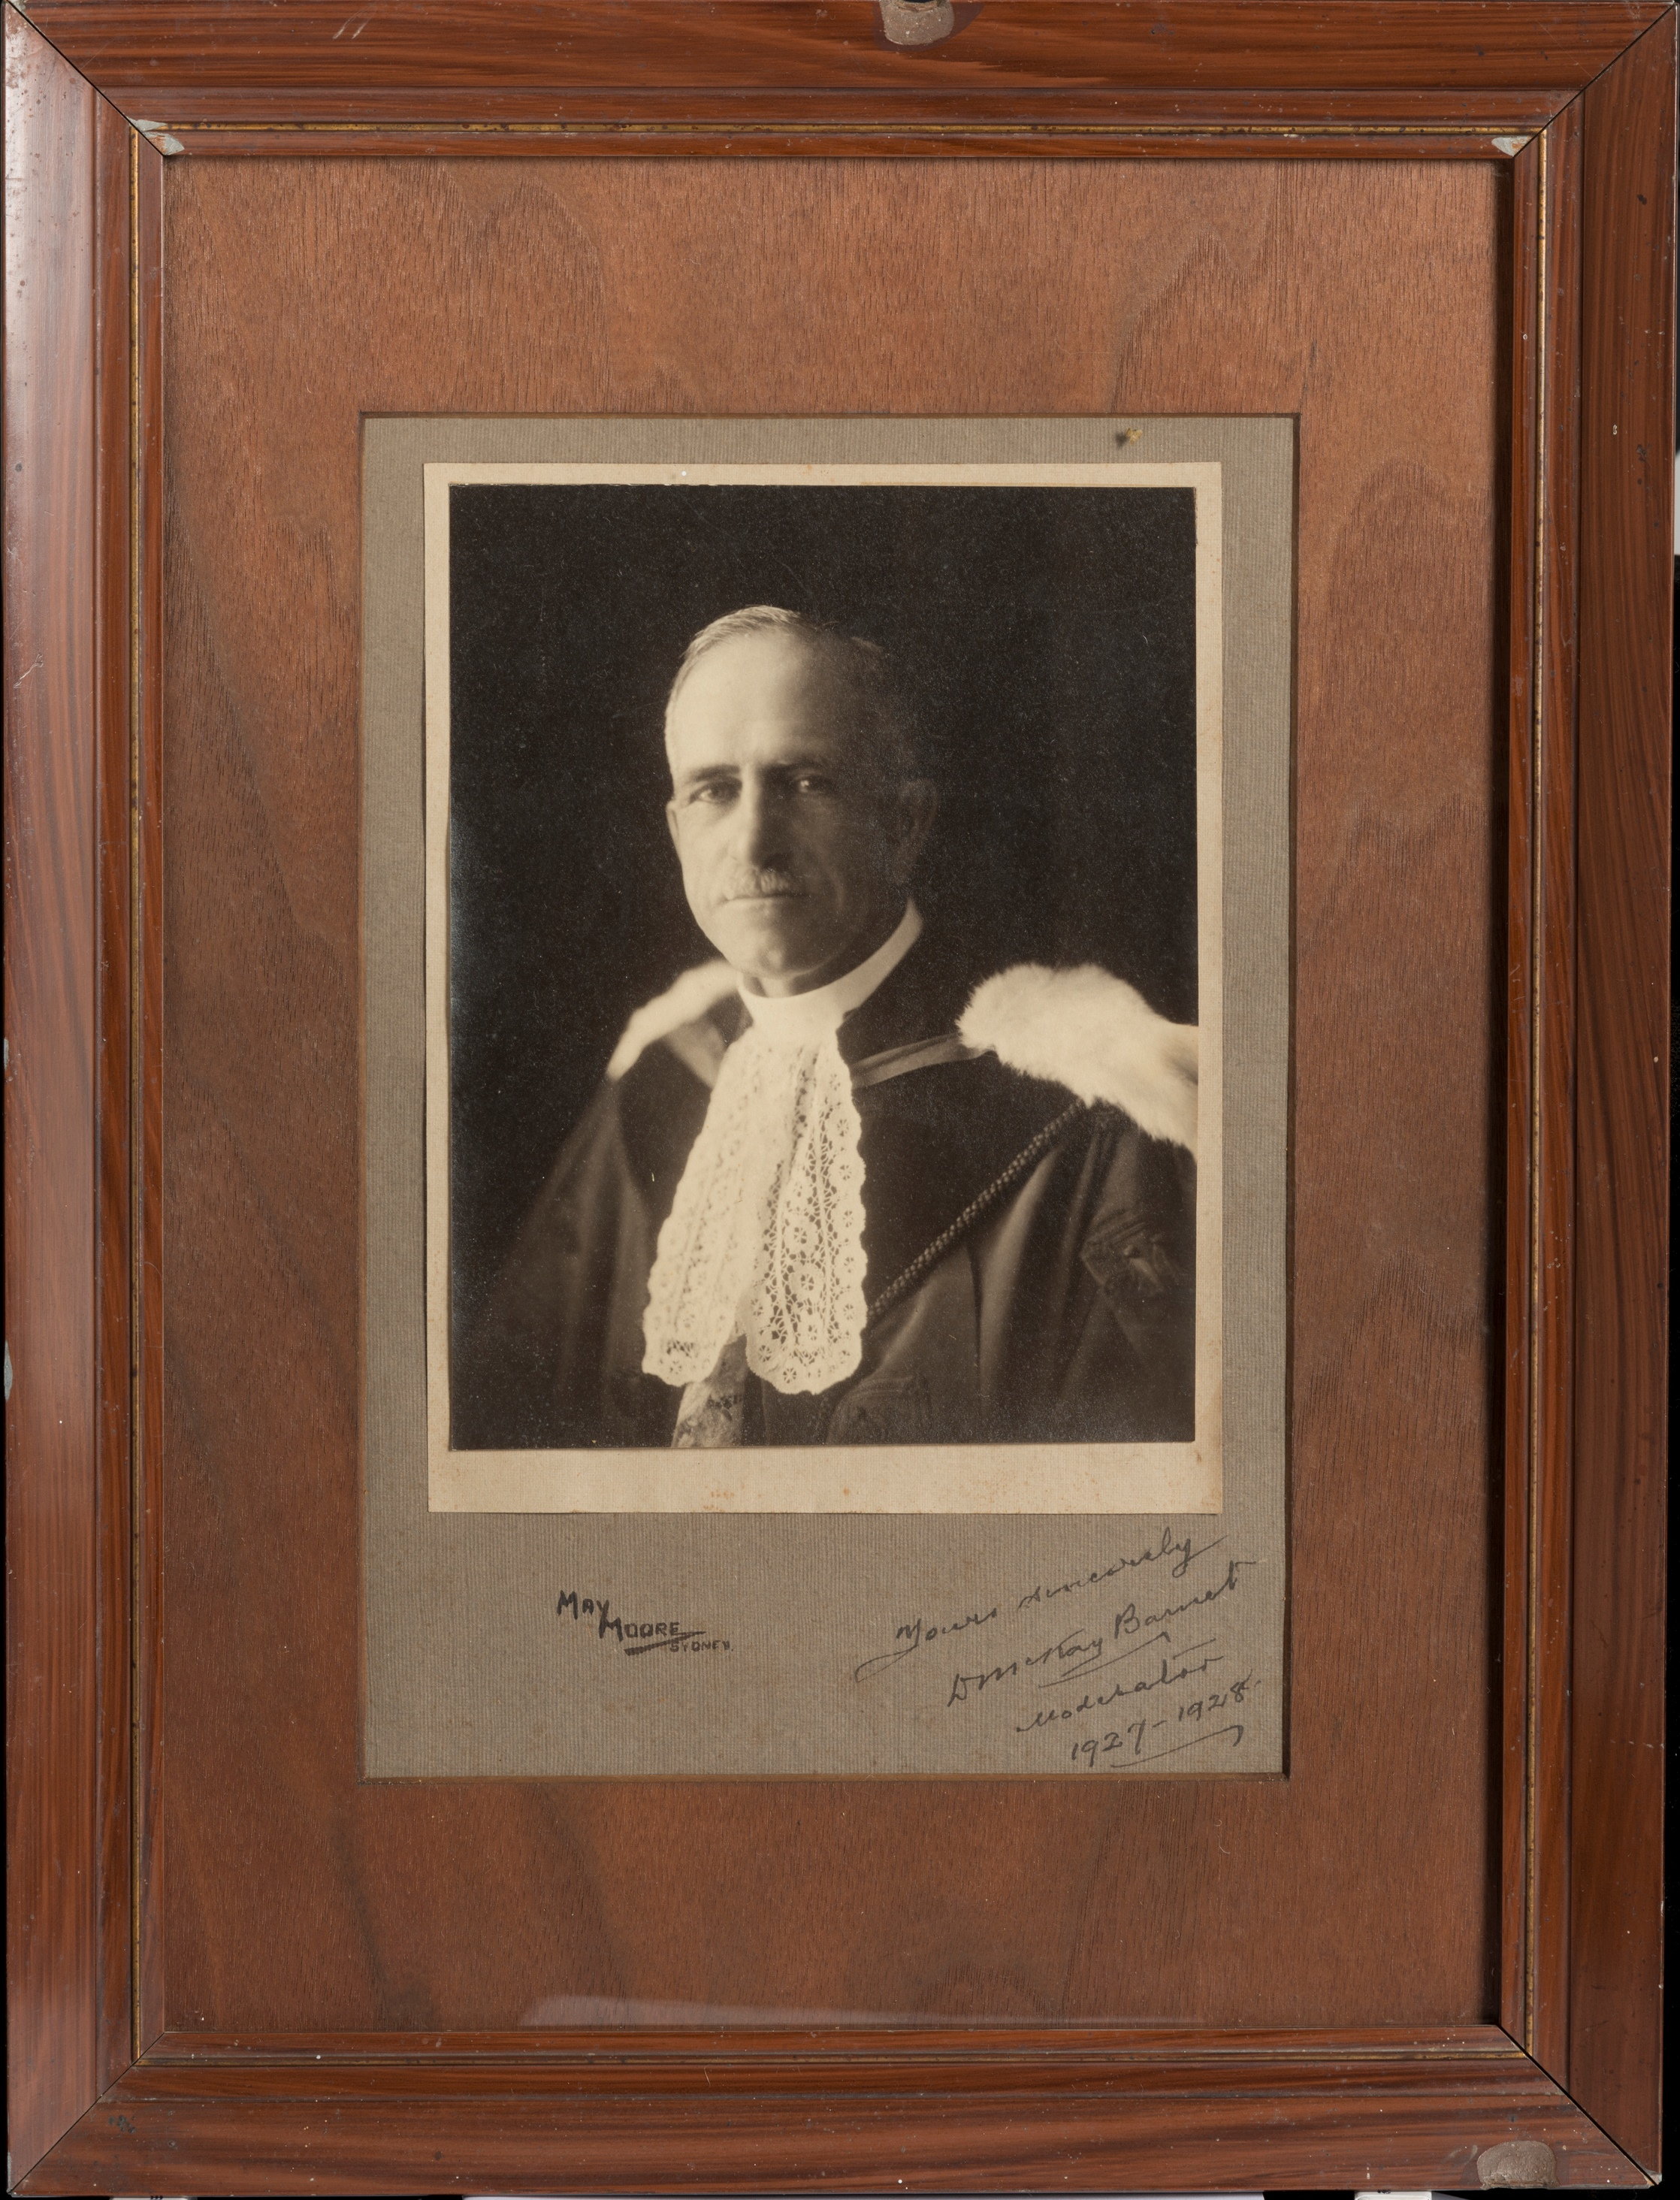 Rev Donald McKay Barnet, Moderator of the Presbyterian Church in New South Wales,1927-1928 / May Moore, Sydney